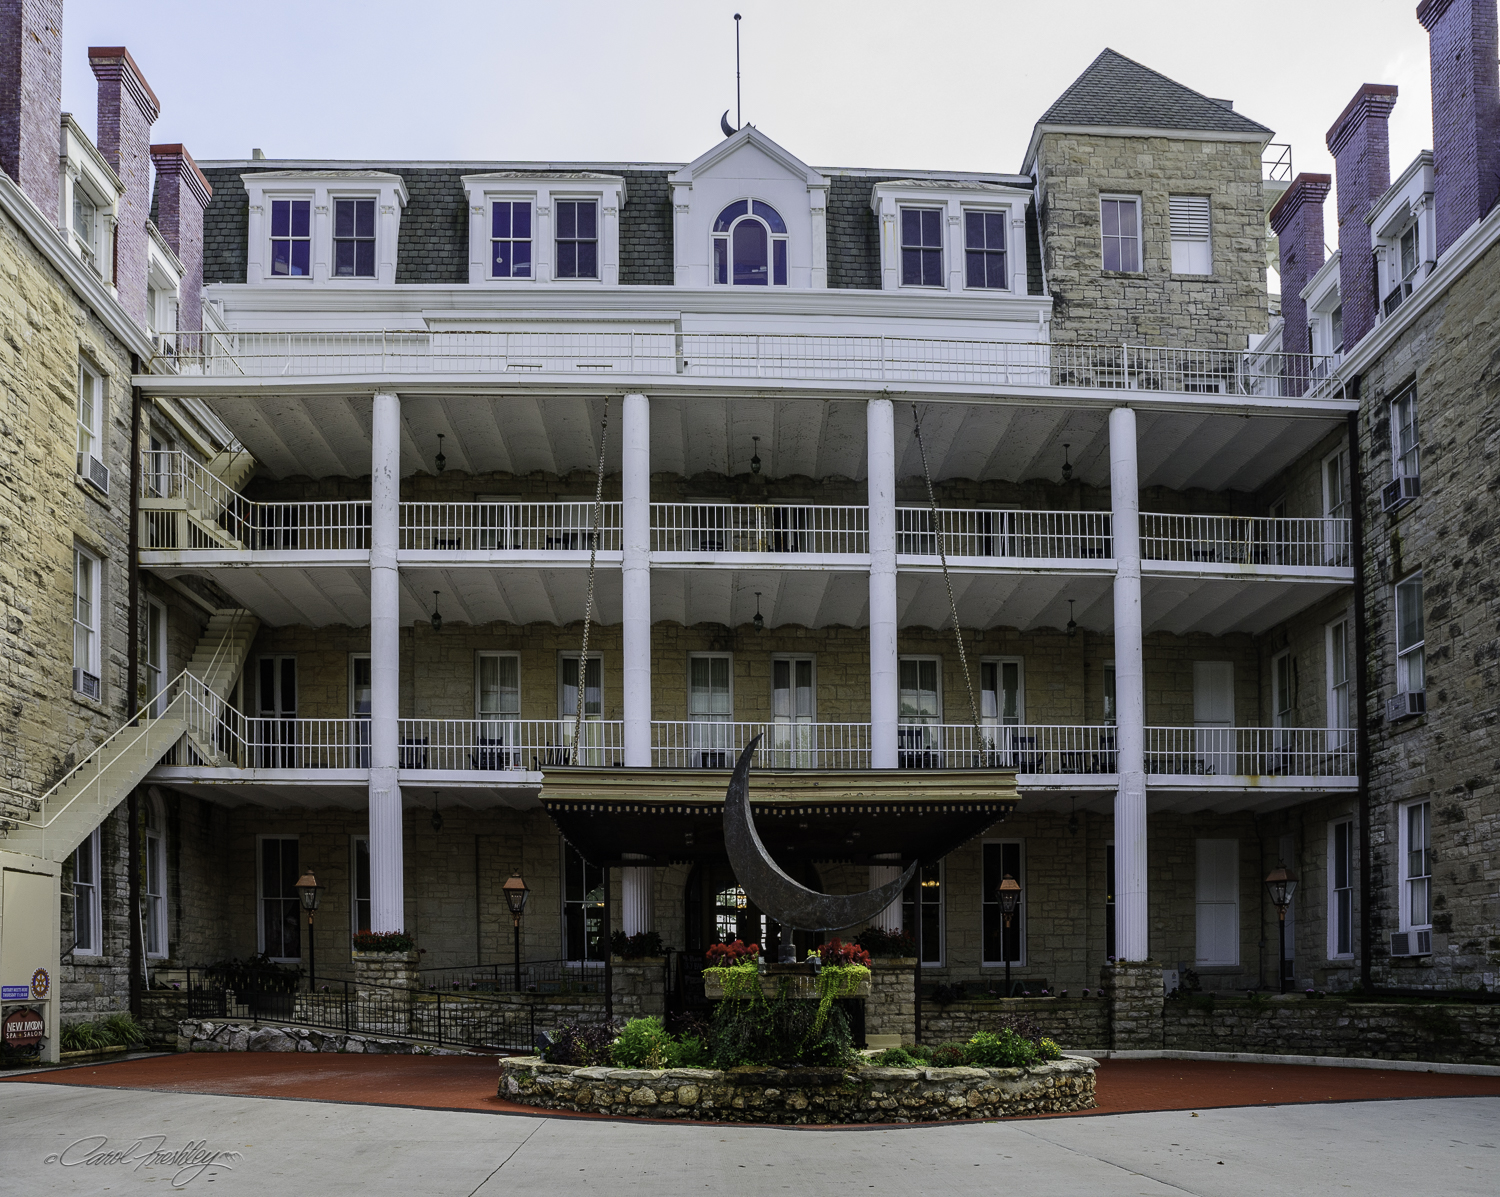 The Crescent Hotel is on the National Register of Historic Hotels. It was built in 1886. We had lunch there (pizza) and were welcome to take all the photographs we wanted, tripods welcome.